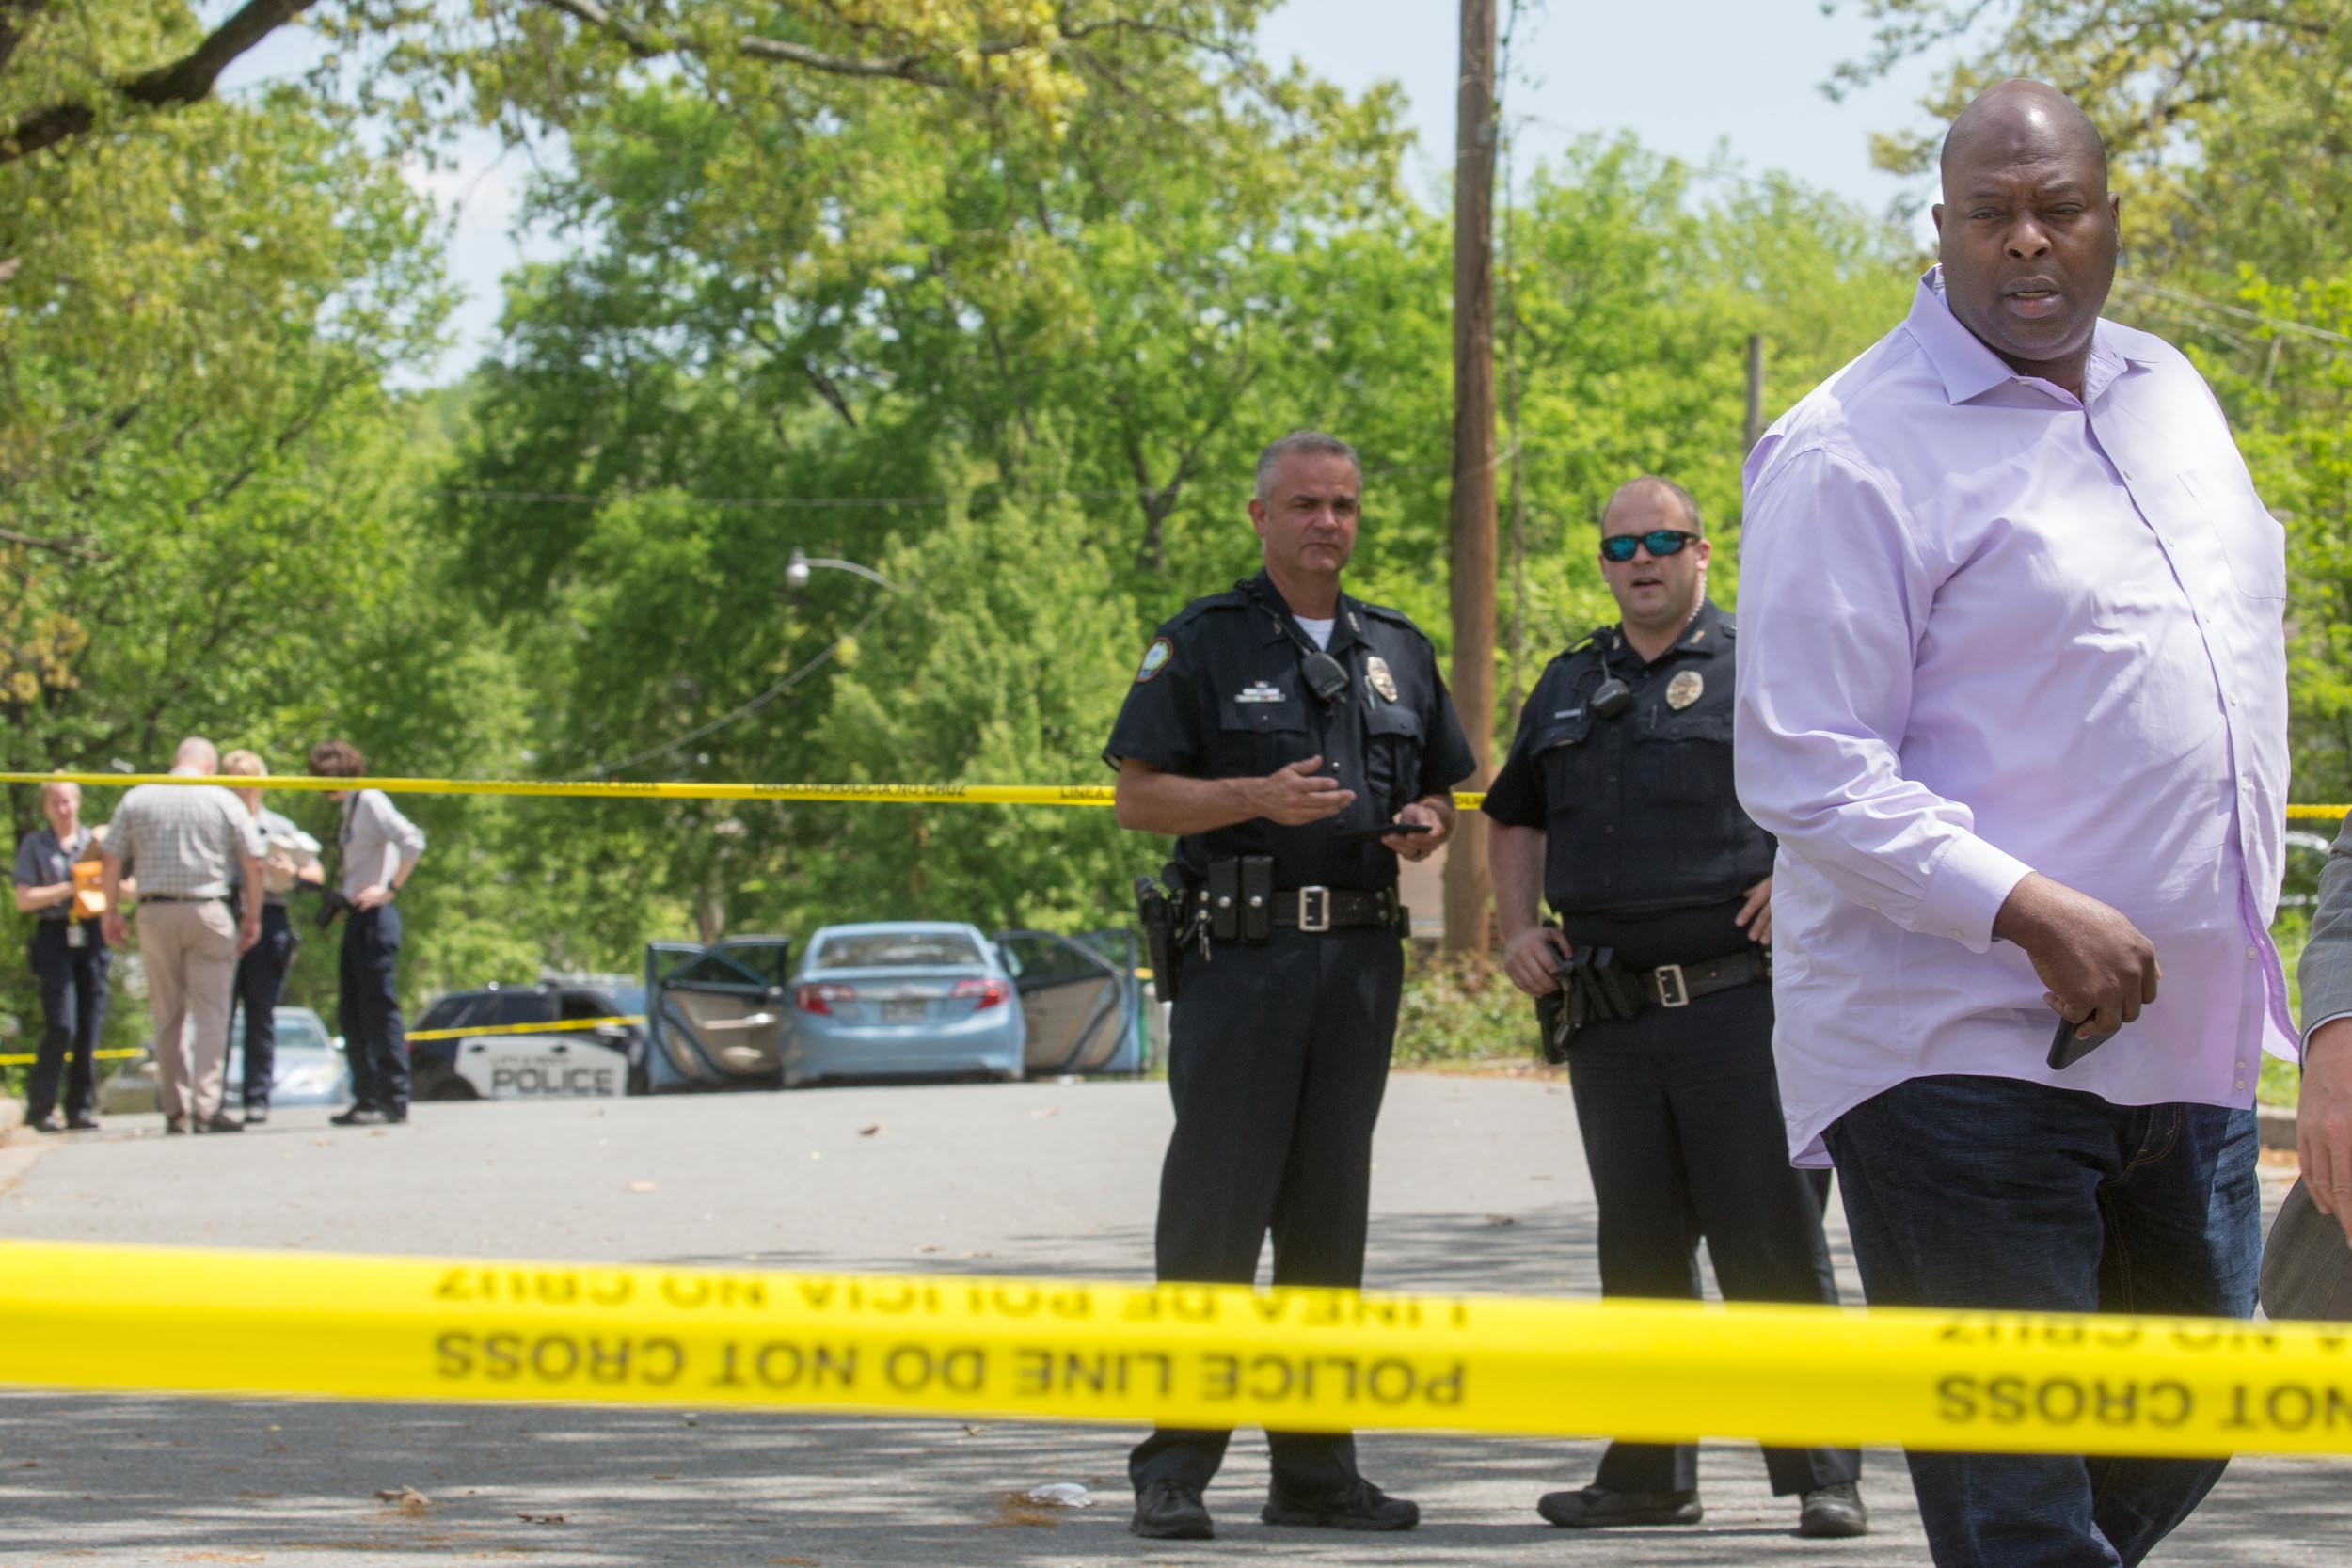 Former Little Rock Police Chief Kenton Buckner walks past crime scene tape at the scene of a double shooting at 27th Street and Washington Street after two 16-year-olds were shot while driving a stolen car April 9, 2017.